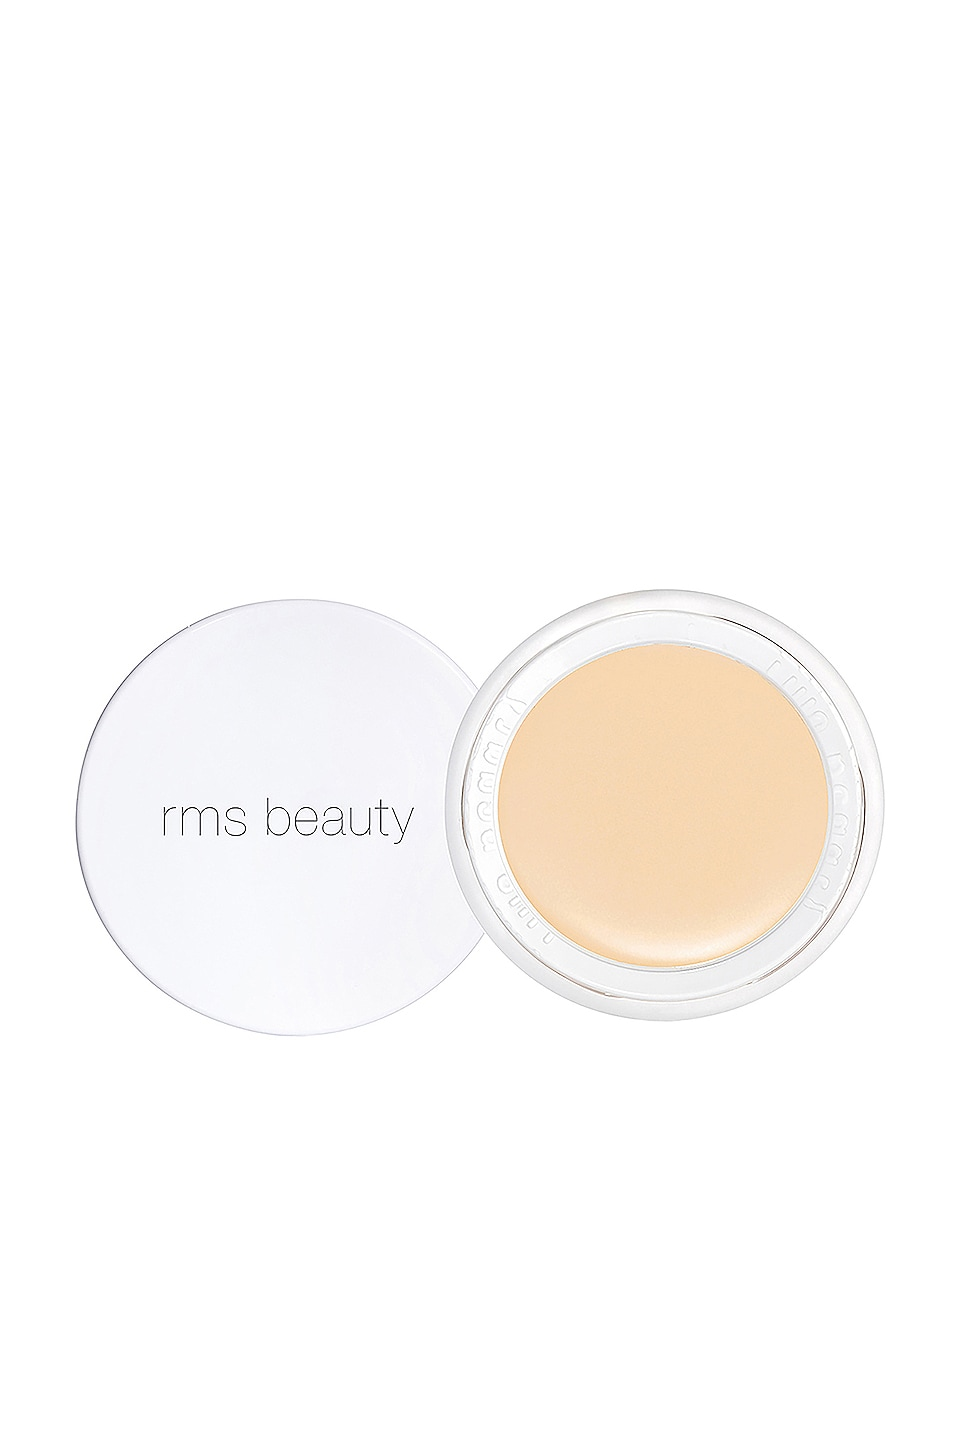 RMS Beauty Un Cover-Up in 11.5